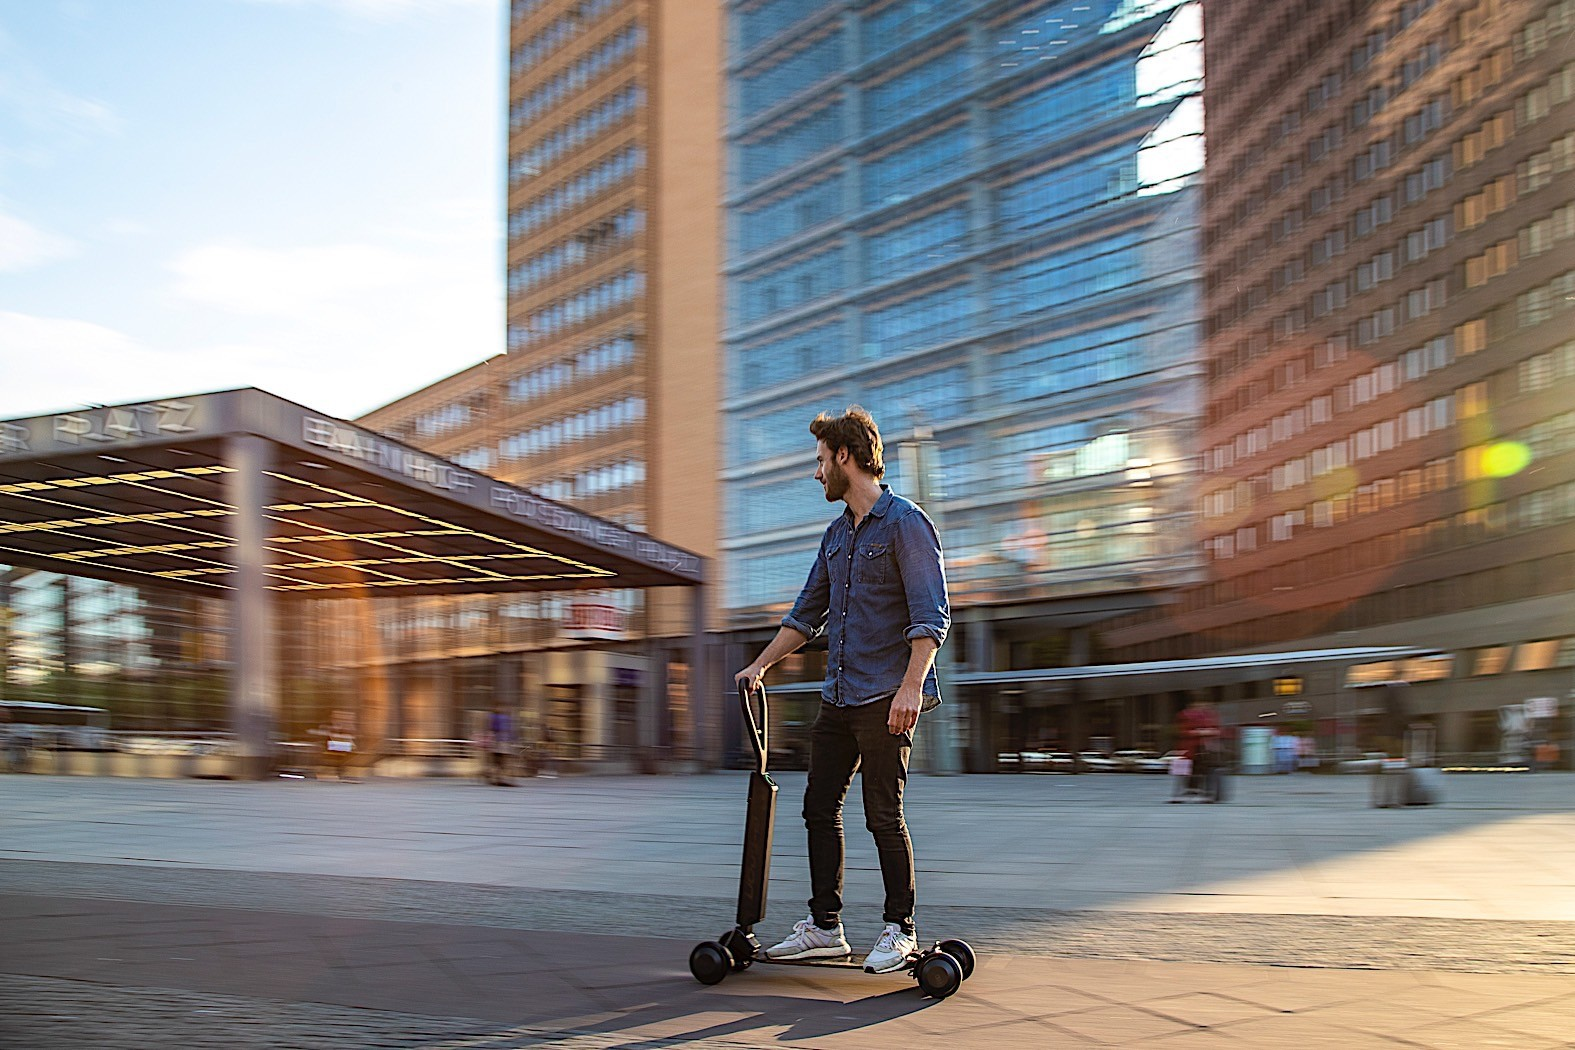 Scooter Sharing Program in Milan Exceeds All Expectations